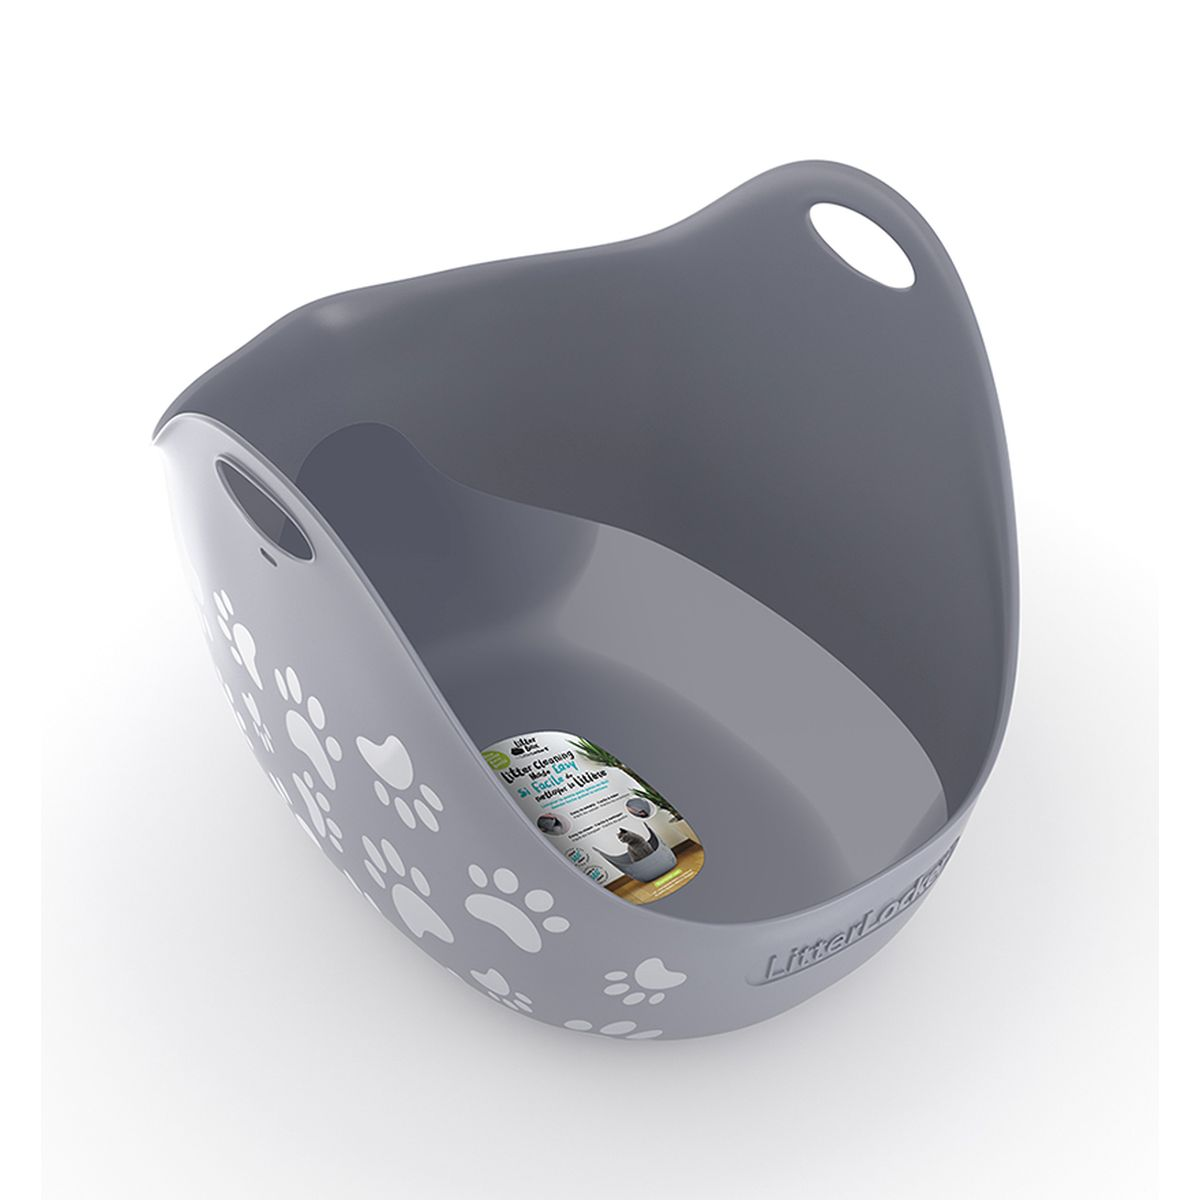 LITTERLOCKER LITTERBOX GREY N 00001